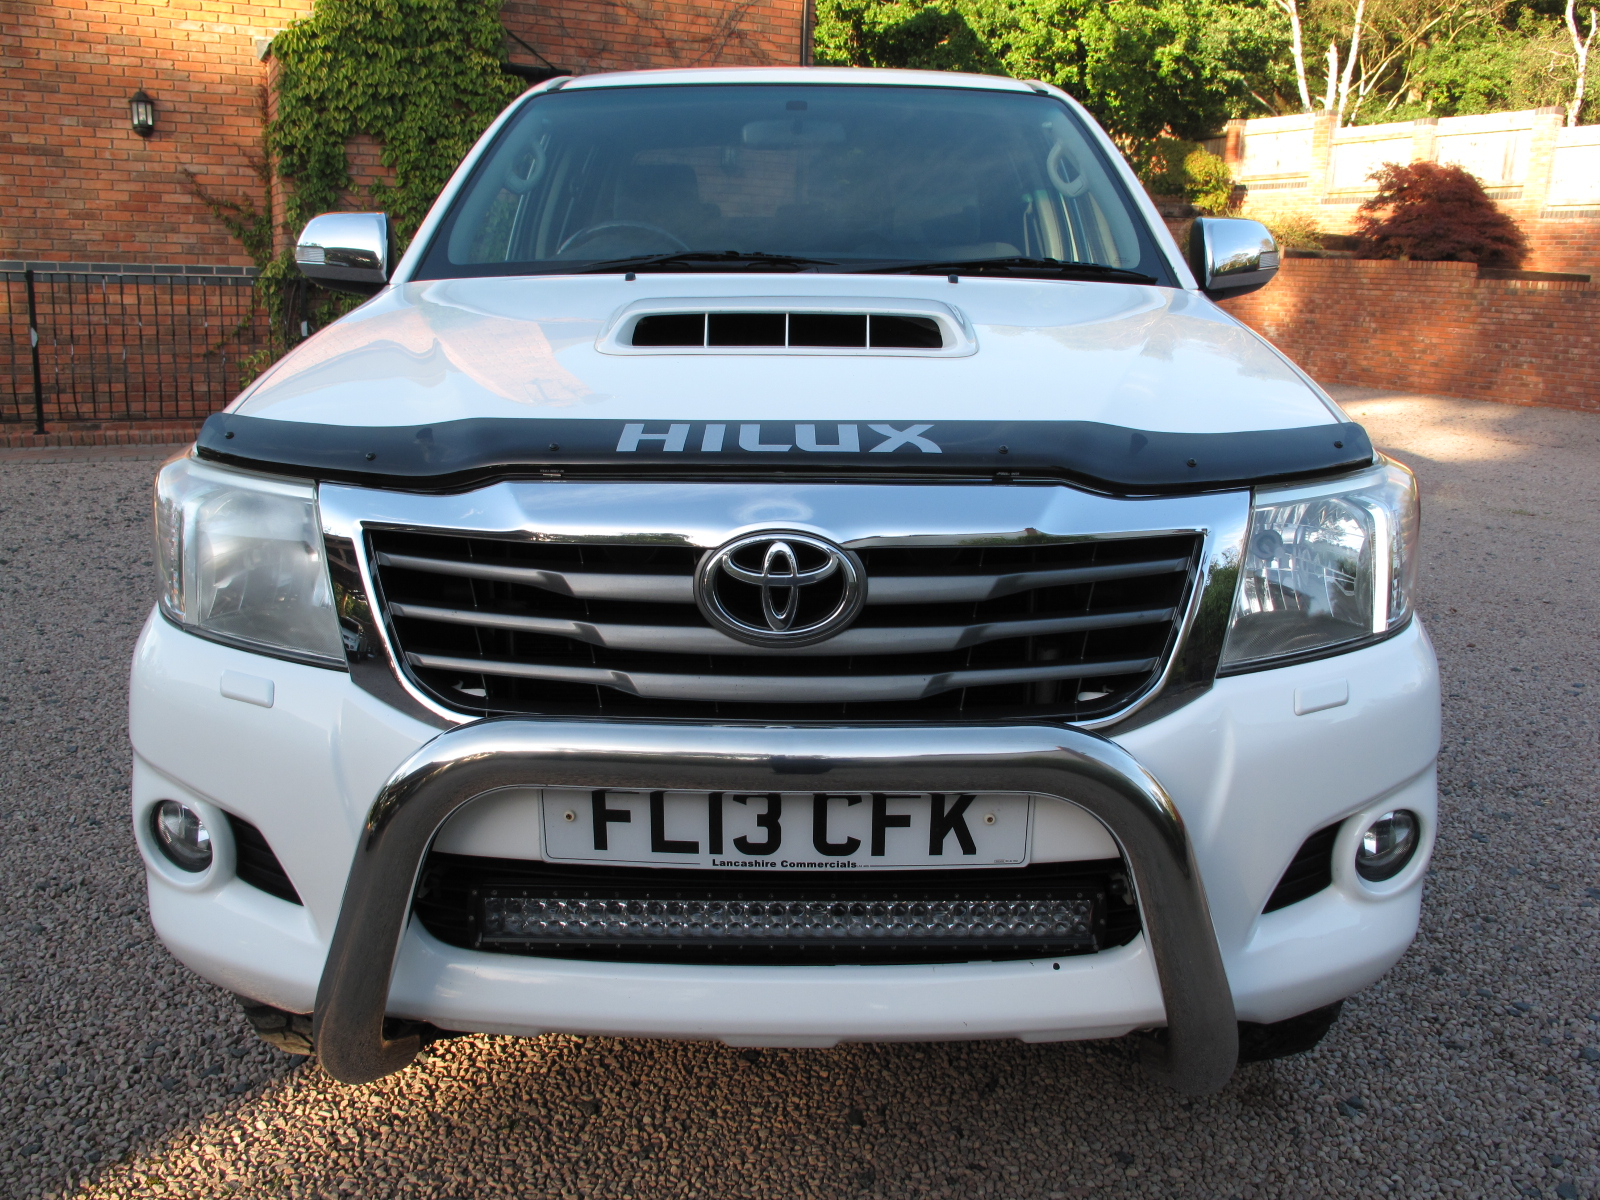 2013 13 Toyota Hilux 3.0 D-4D Invincible Double Cab Pickup 4dr ABSOLUTELY STUNNING TRUCK! NO VAT  TOP OF THE RANGE! NO VAT! full